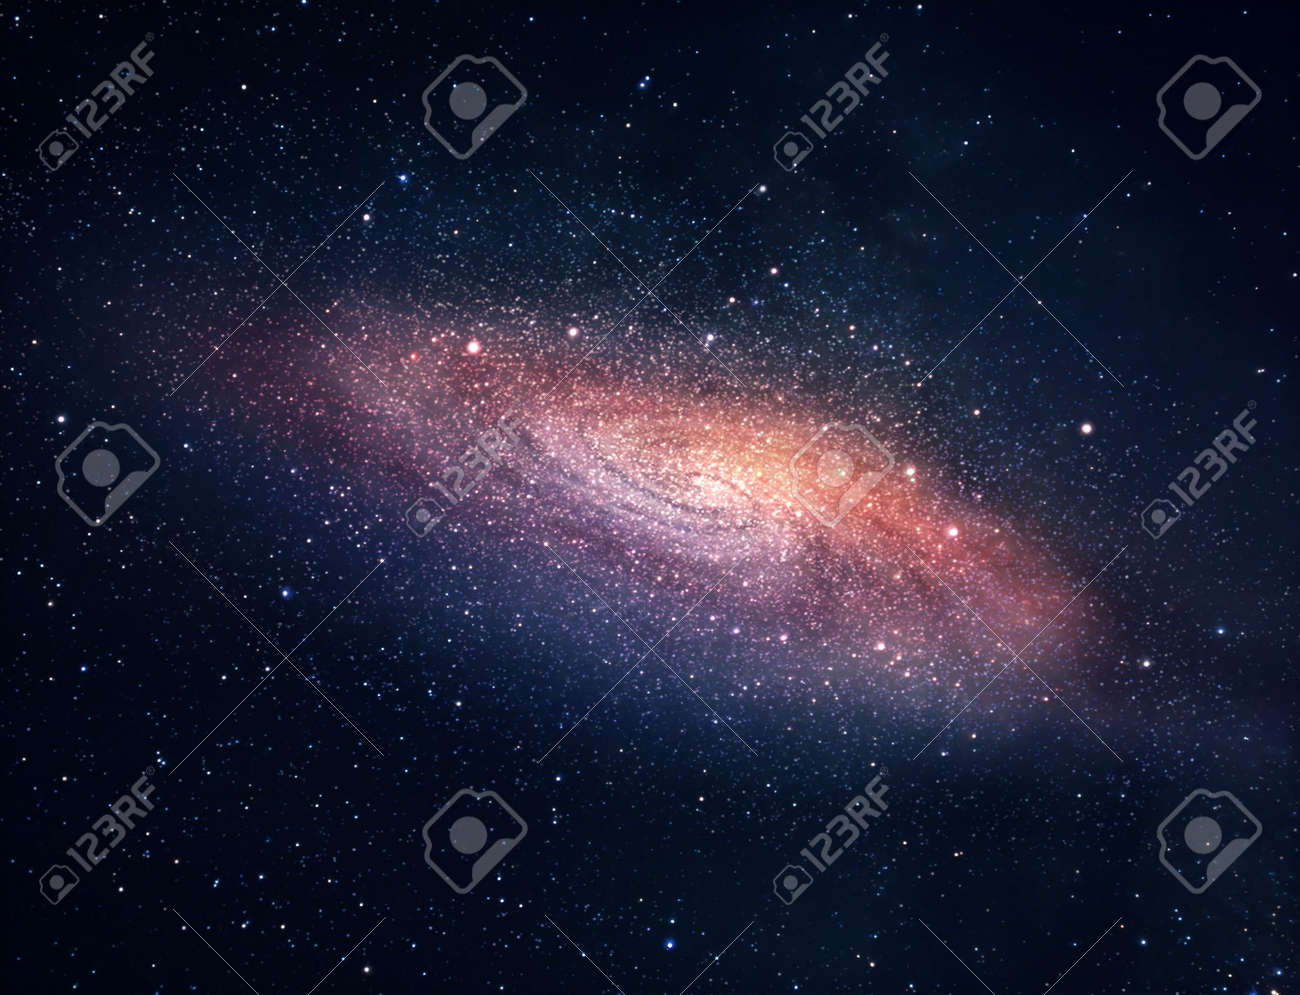 A picture of bright spiral galaxy with myriads of stars - 7320147